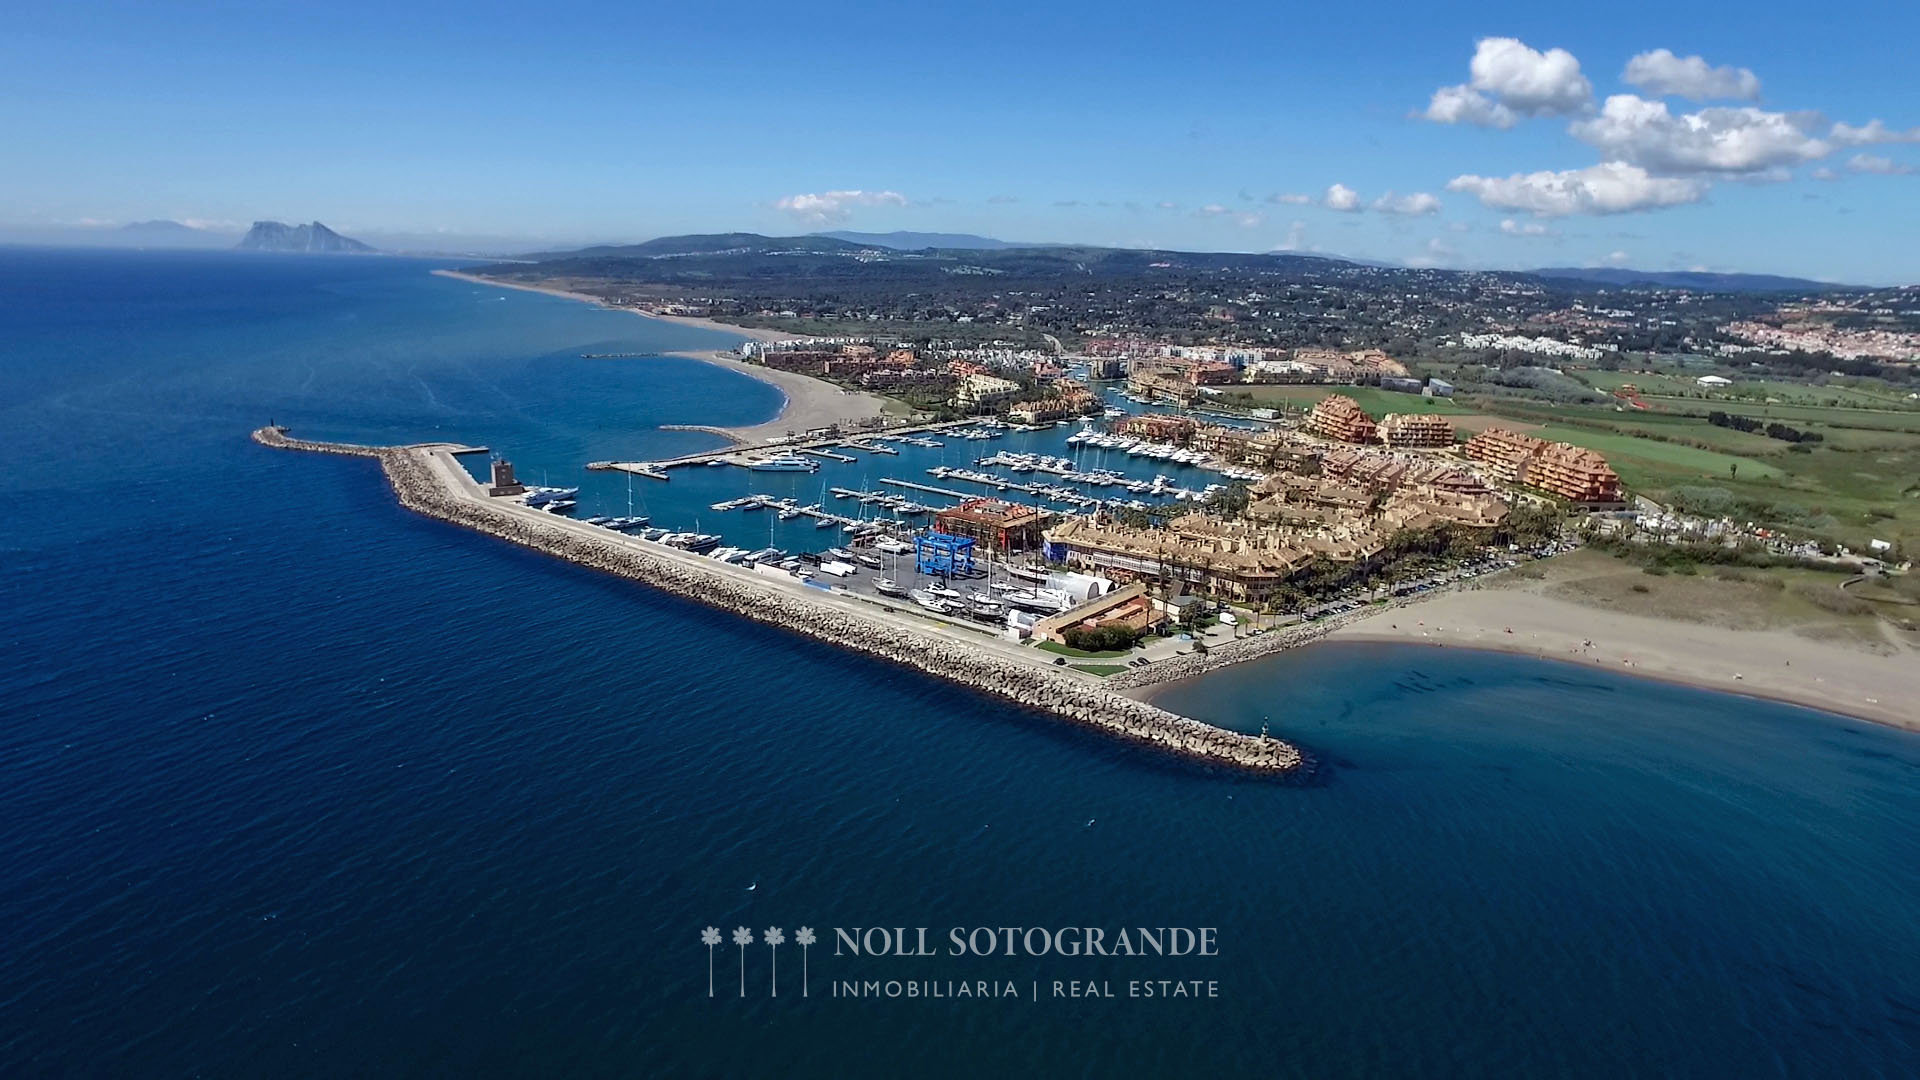 Property Market Report By Survey Spain Sotogrande January 2020 Noll Partners Sotogrande Real Estate